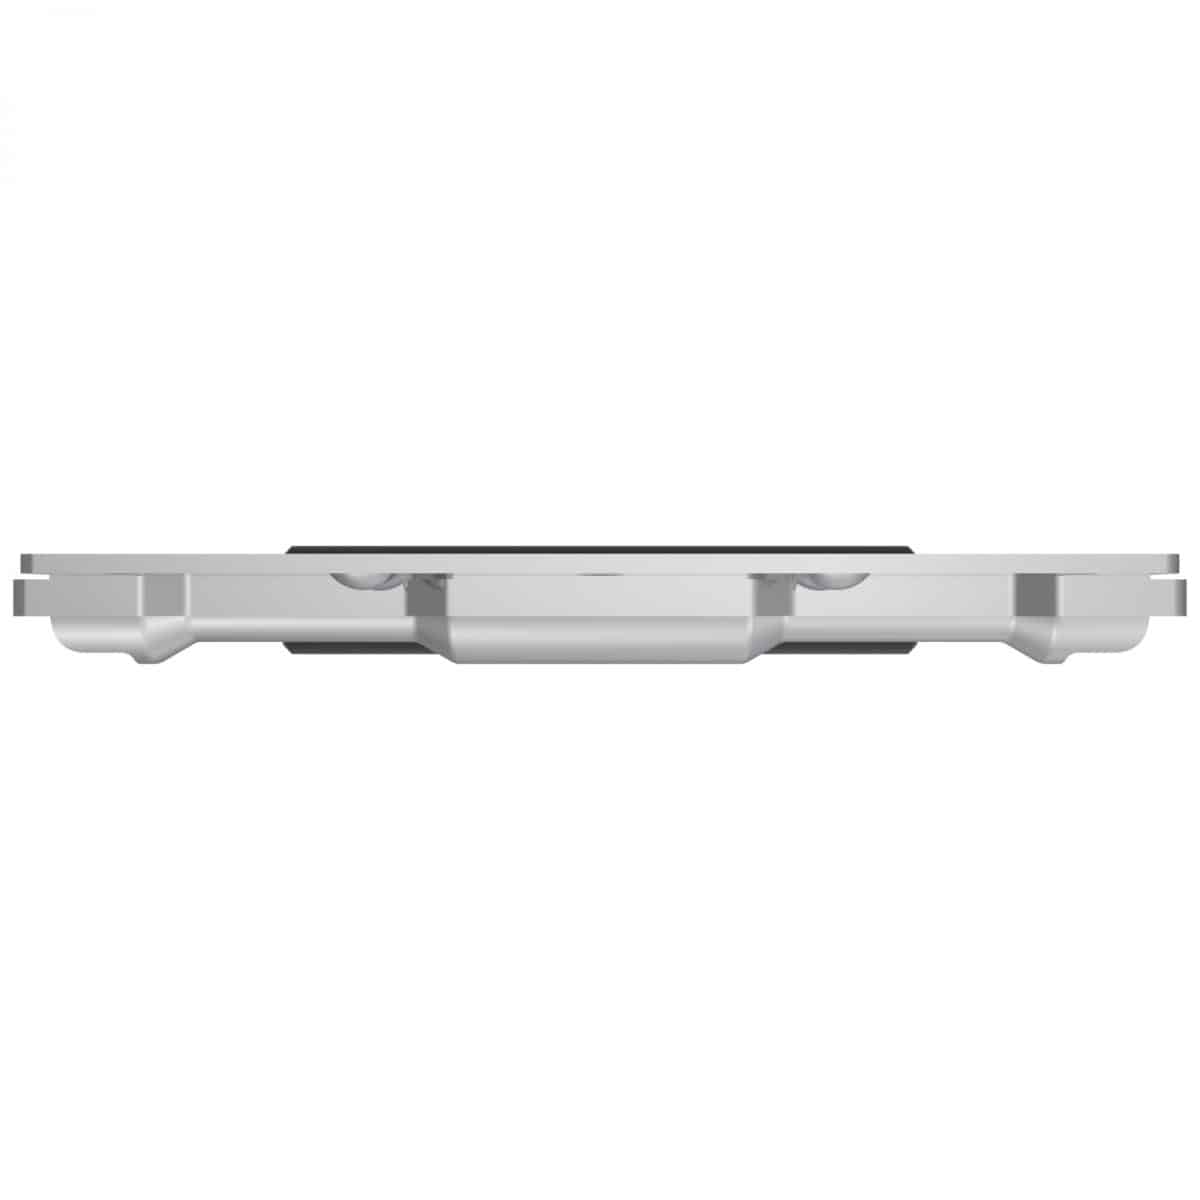 ARMOR H1201 Small Surface Mount Handle